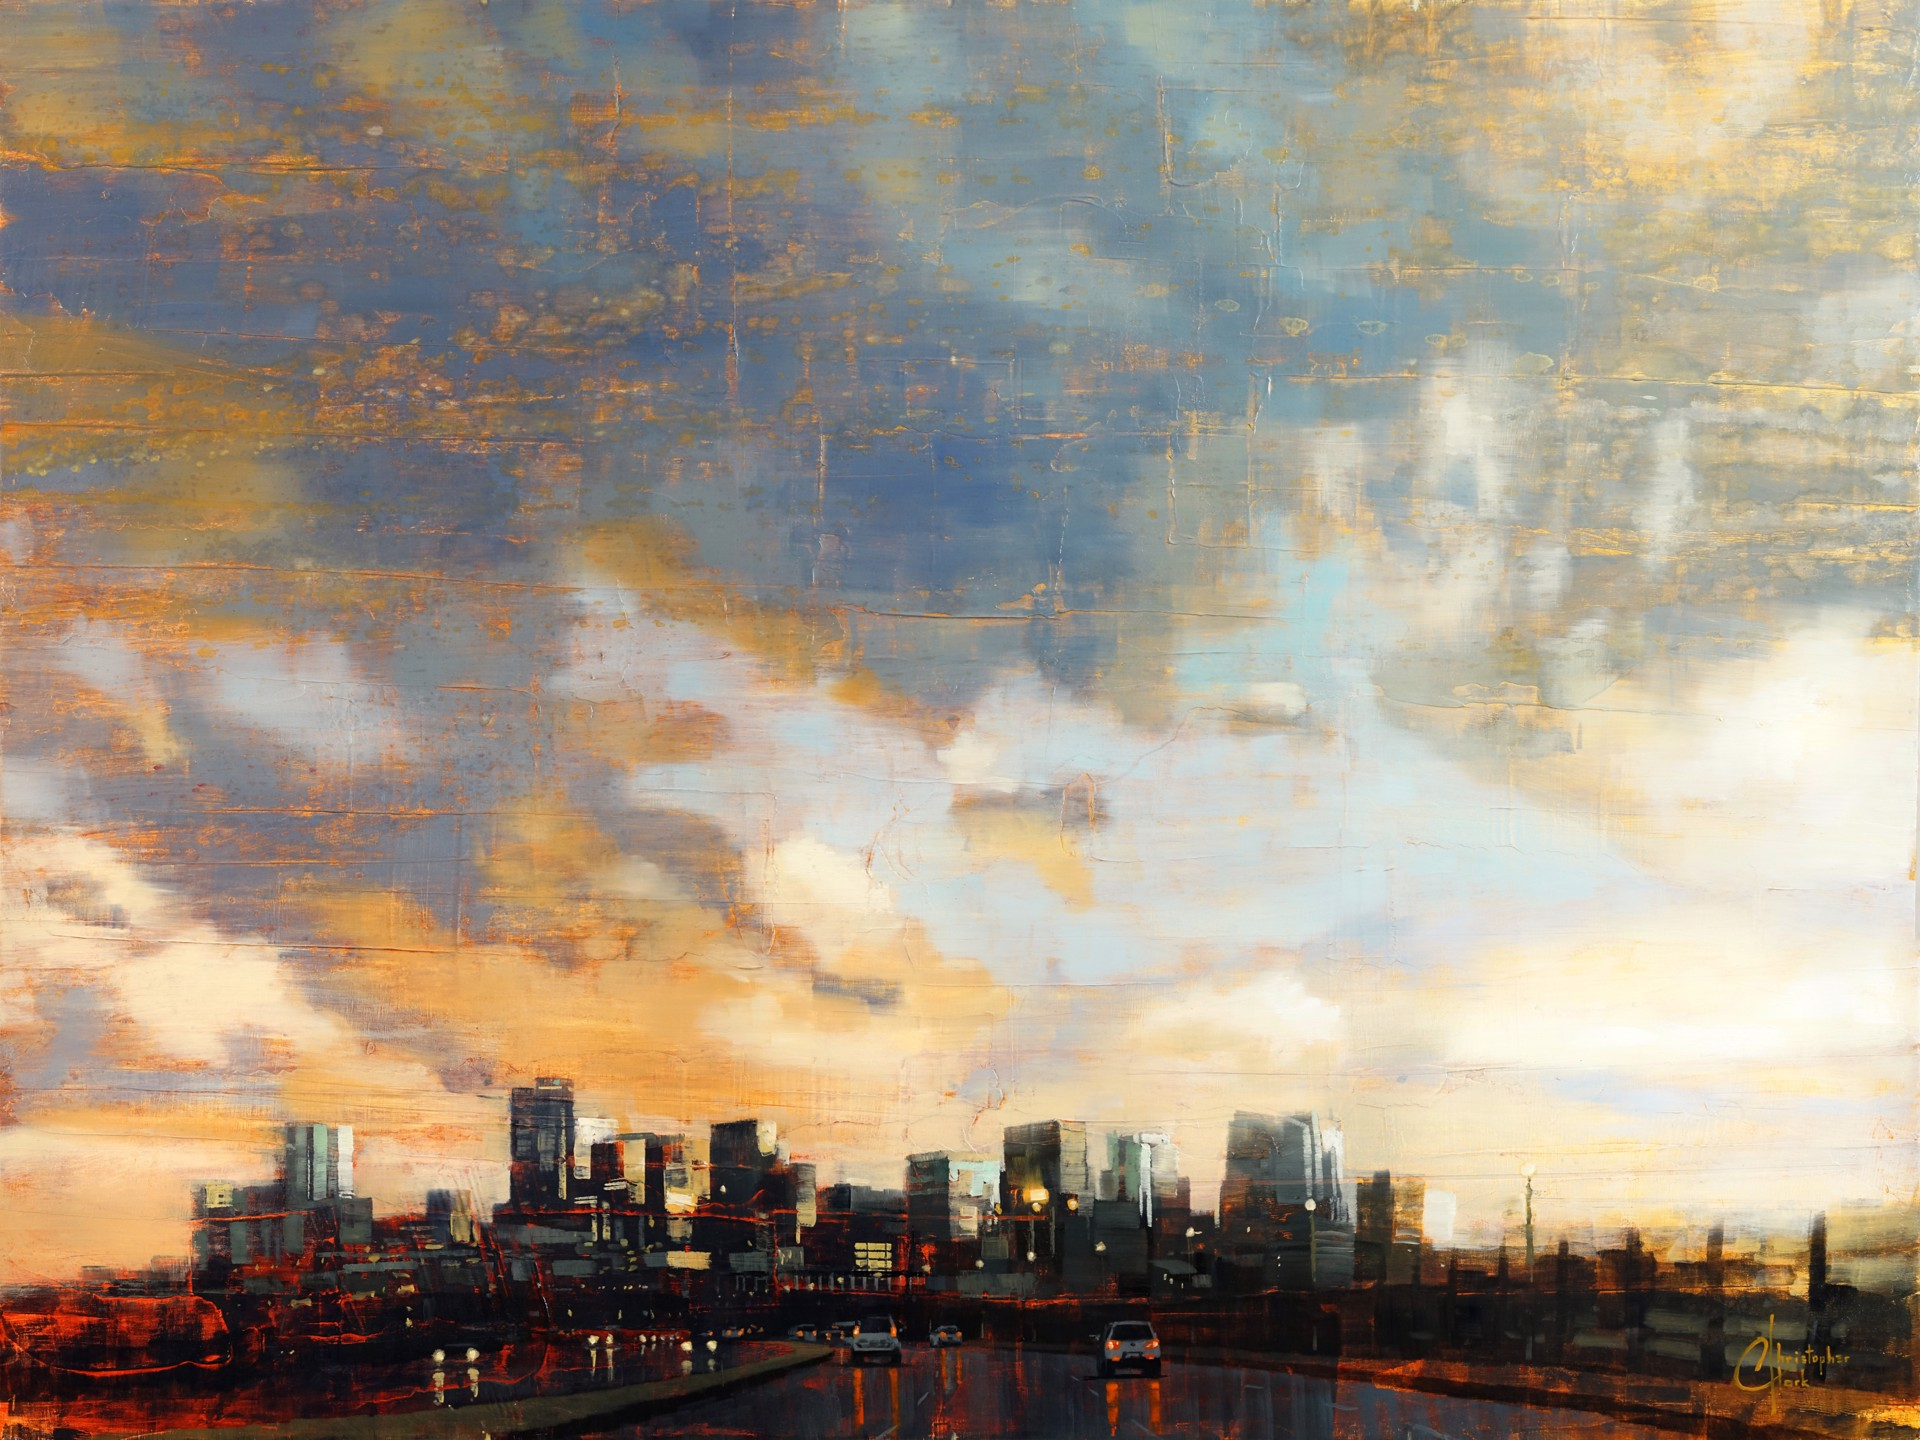 Denver Skyline Beneath the Afternoon Storm by Christopher Clark